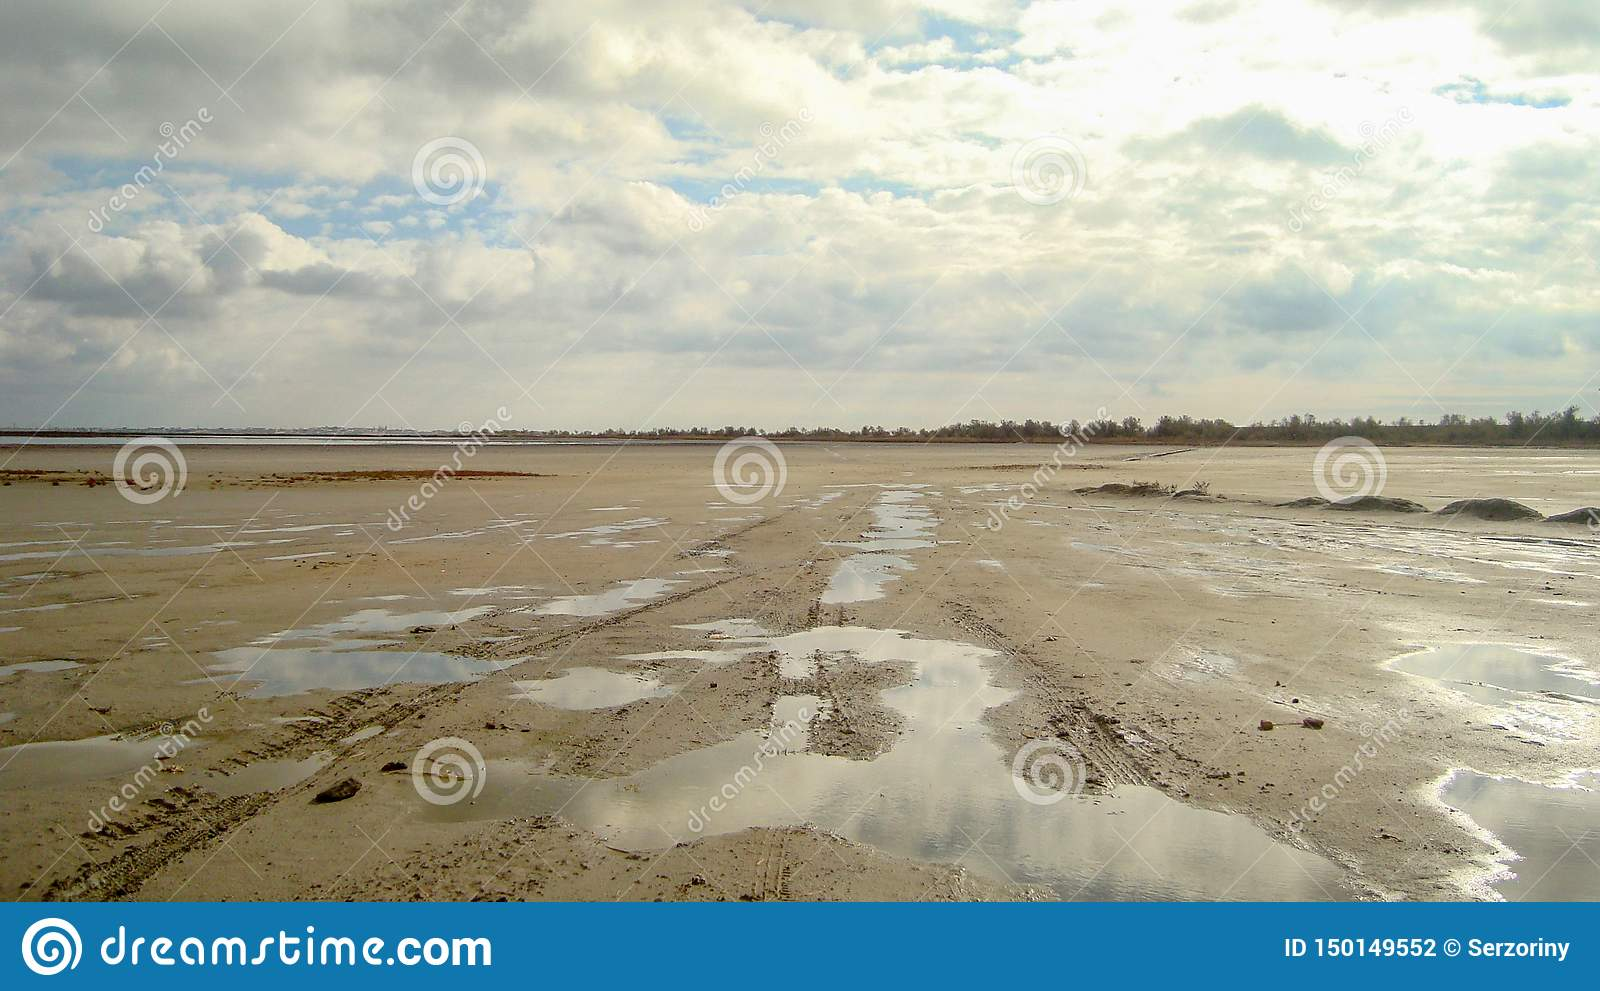 Dried up sandy estuary under the boundless cloudy sky